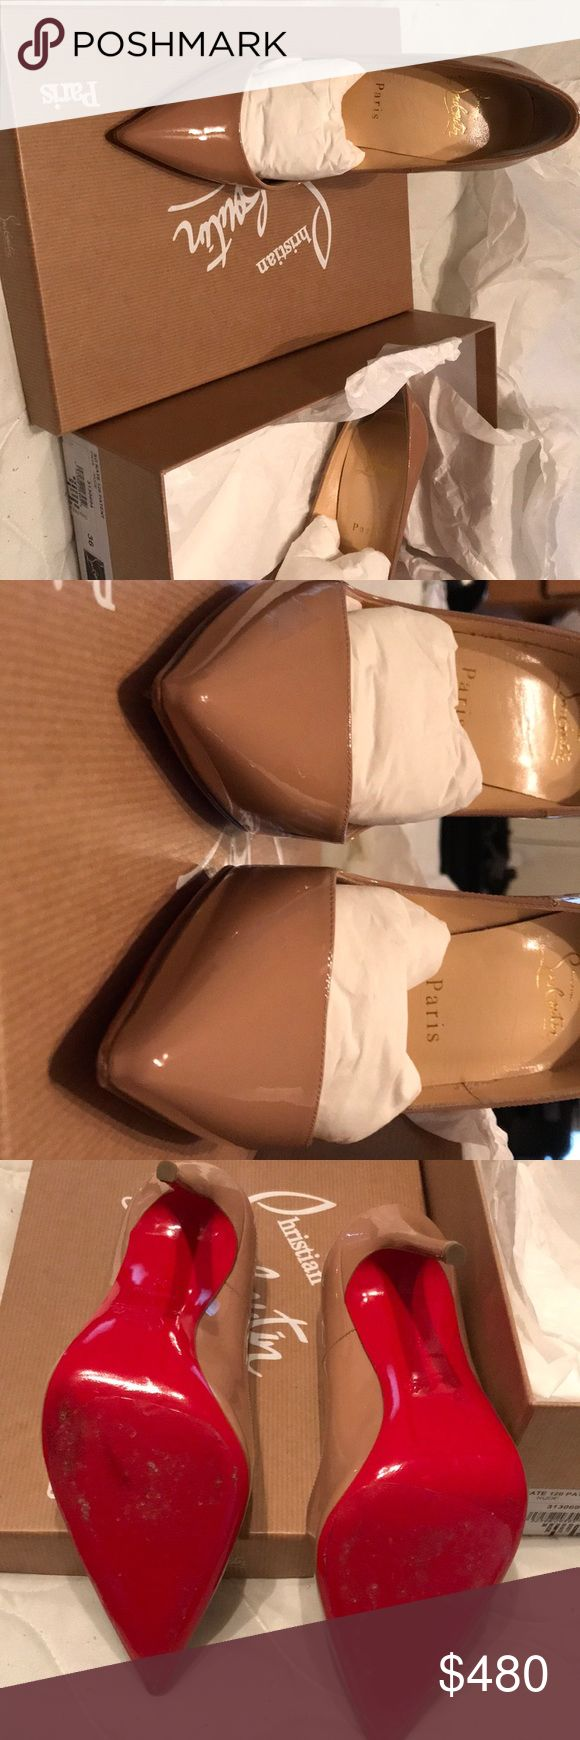 So Kate 120 PATENT Nude Christian Louboutin Like New! Worn 2x's With clear sole protector's Christian Louboutin Shoes Heels